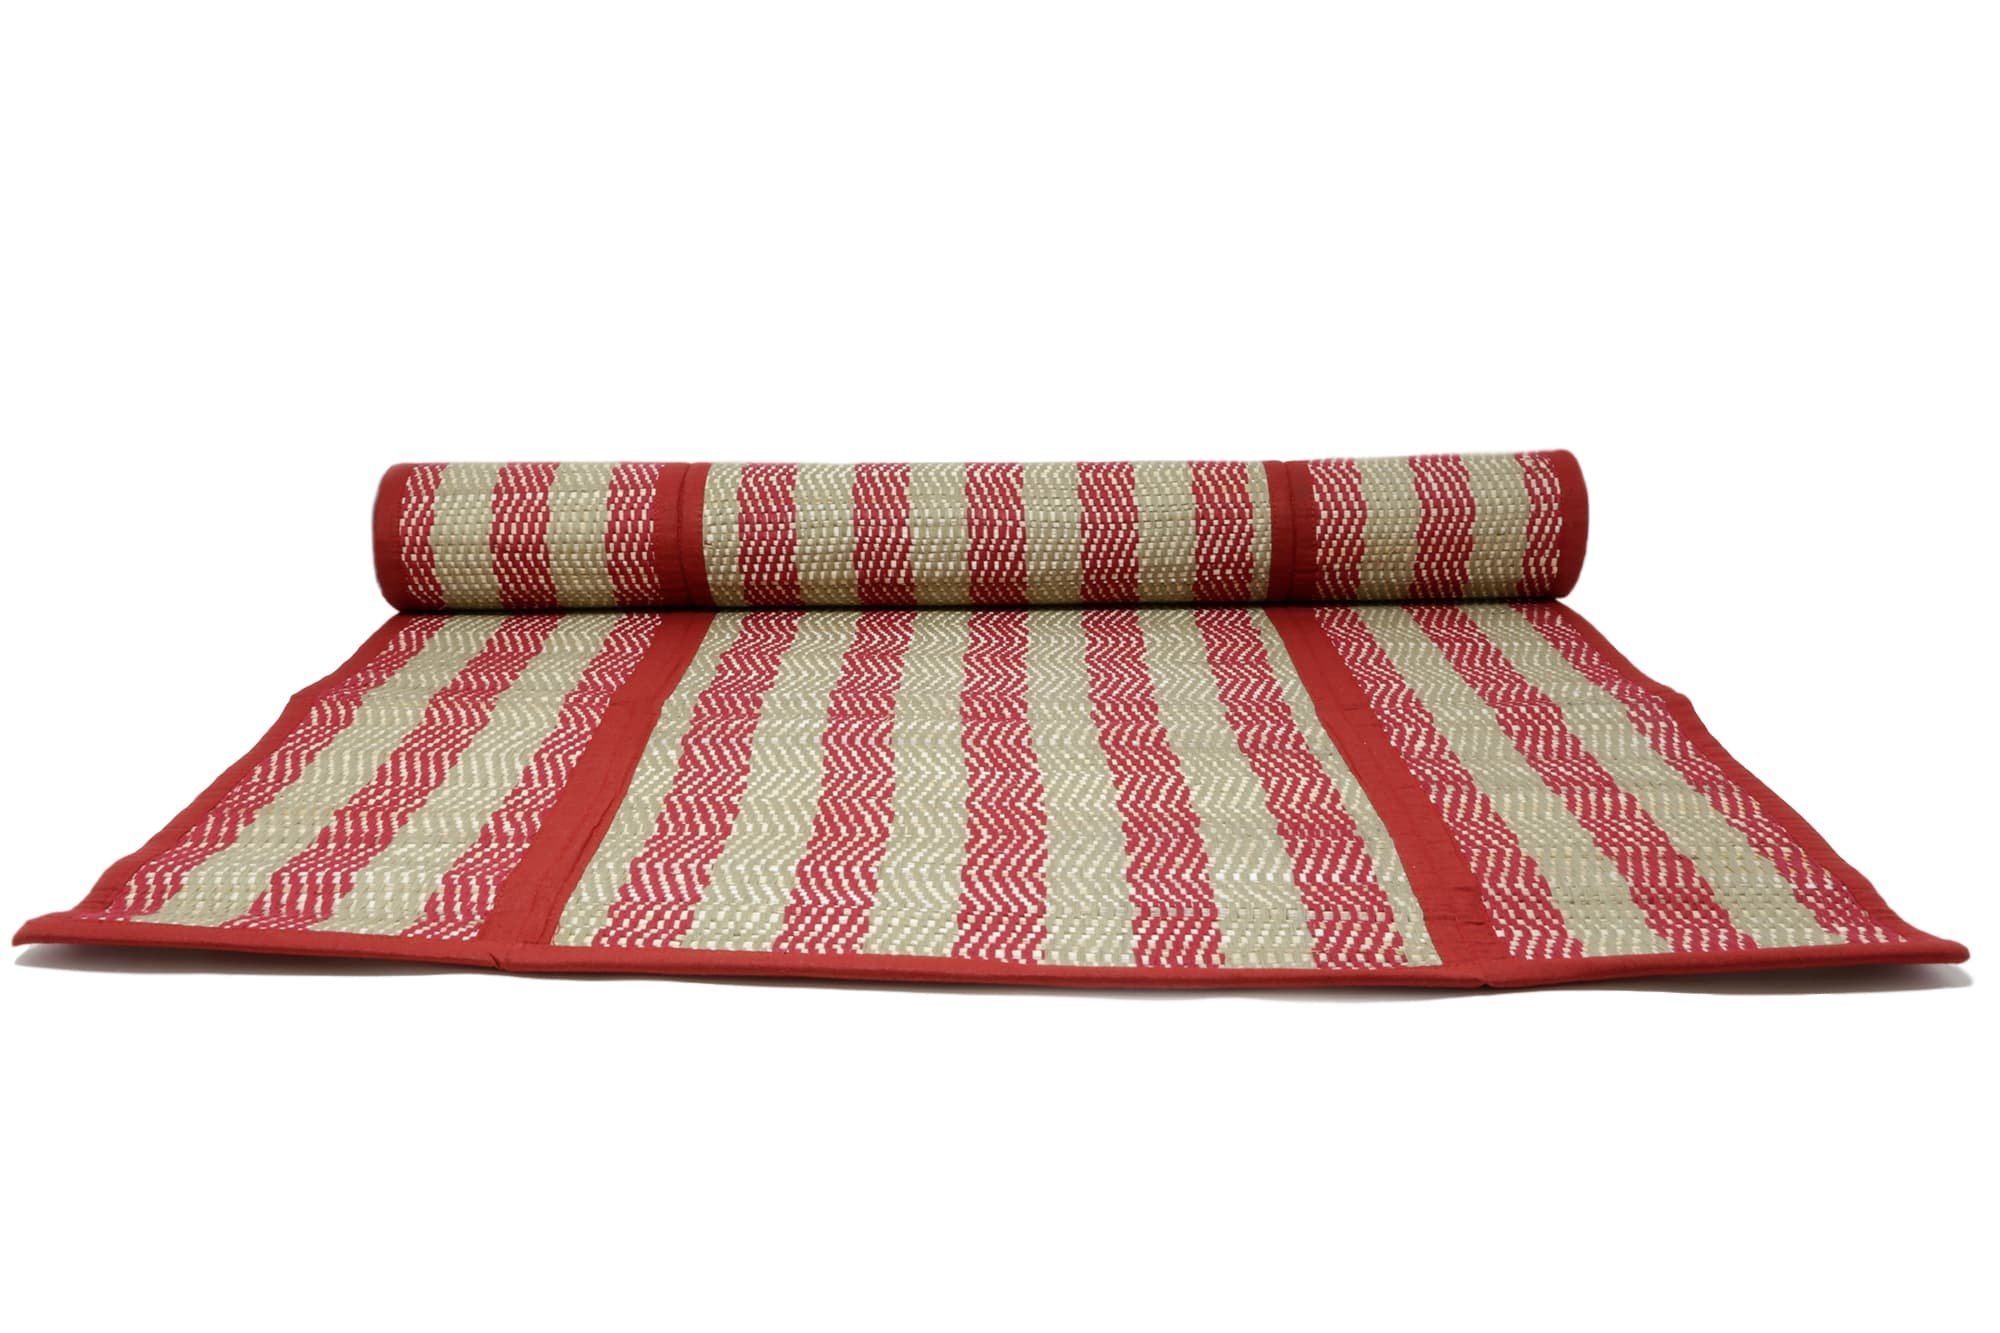 ShalinIndia Handloom Woven Eco Friendly Crimson Beige Banana Fiber Chevrom Multipurpose Travel Mat For Beach Meditation Yoga Exercise Picnic Home Outdoors 26 X72 Inch Folded -With A Cotton Bag by ShalinIndia